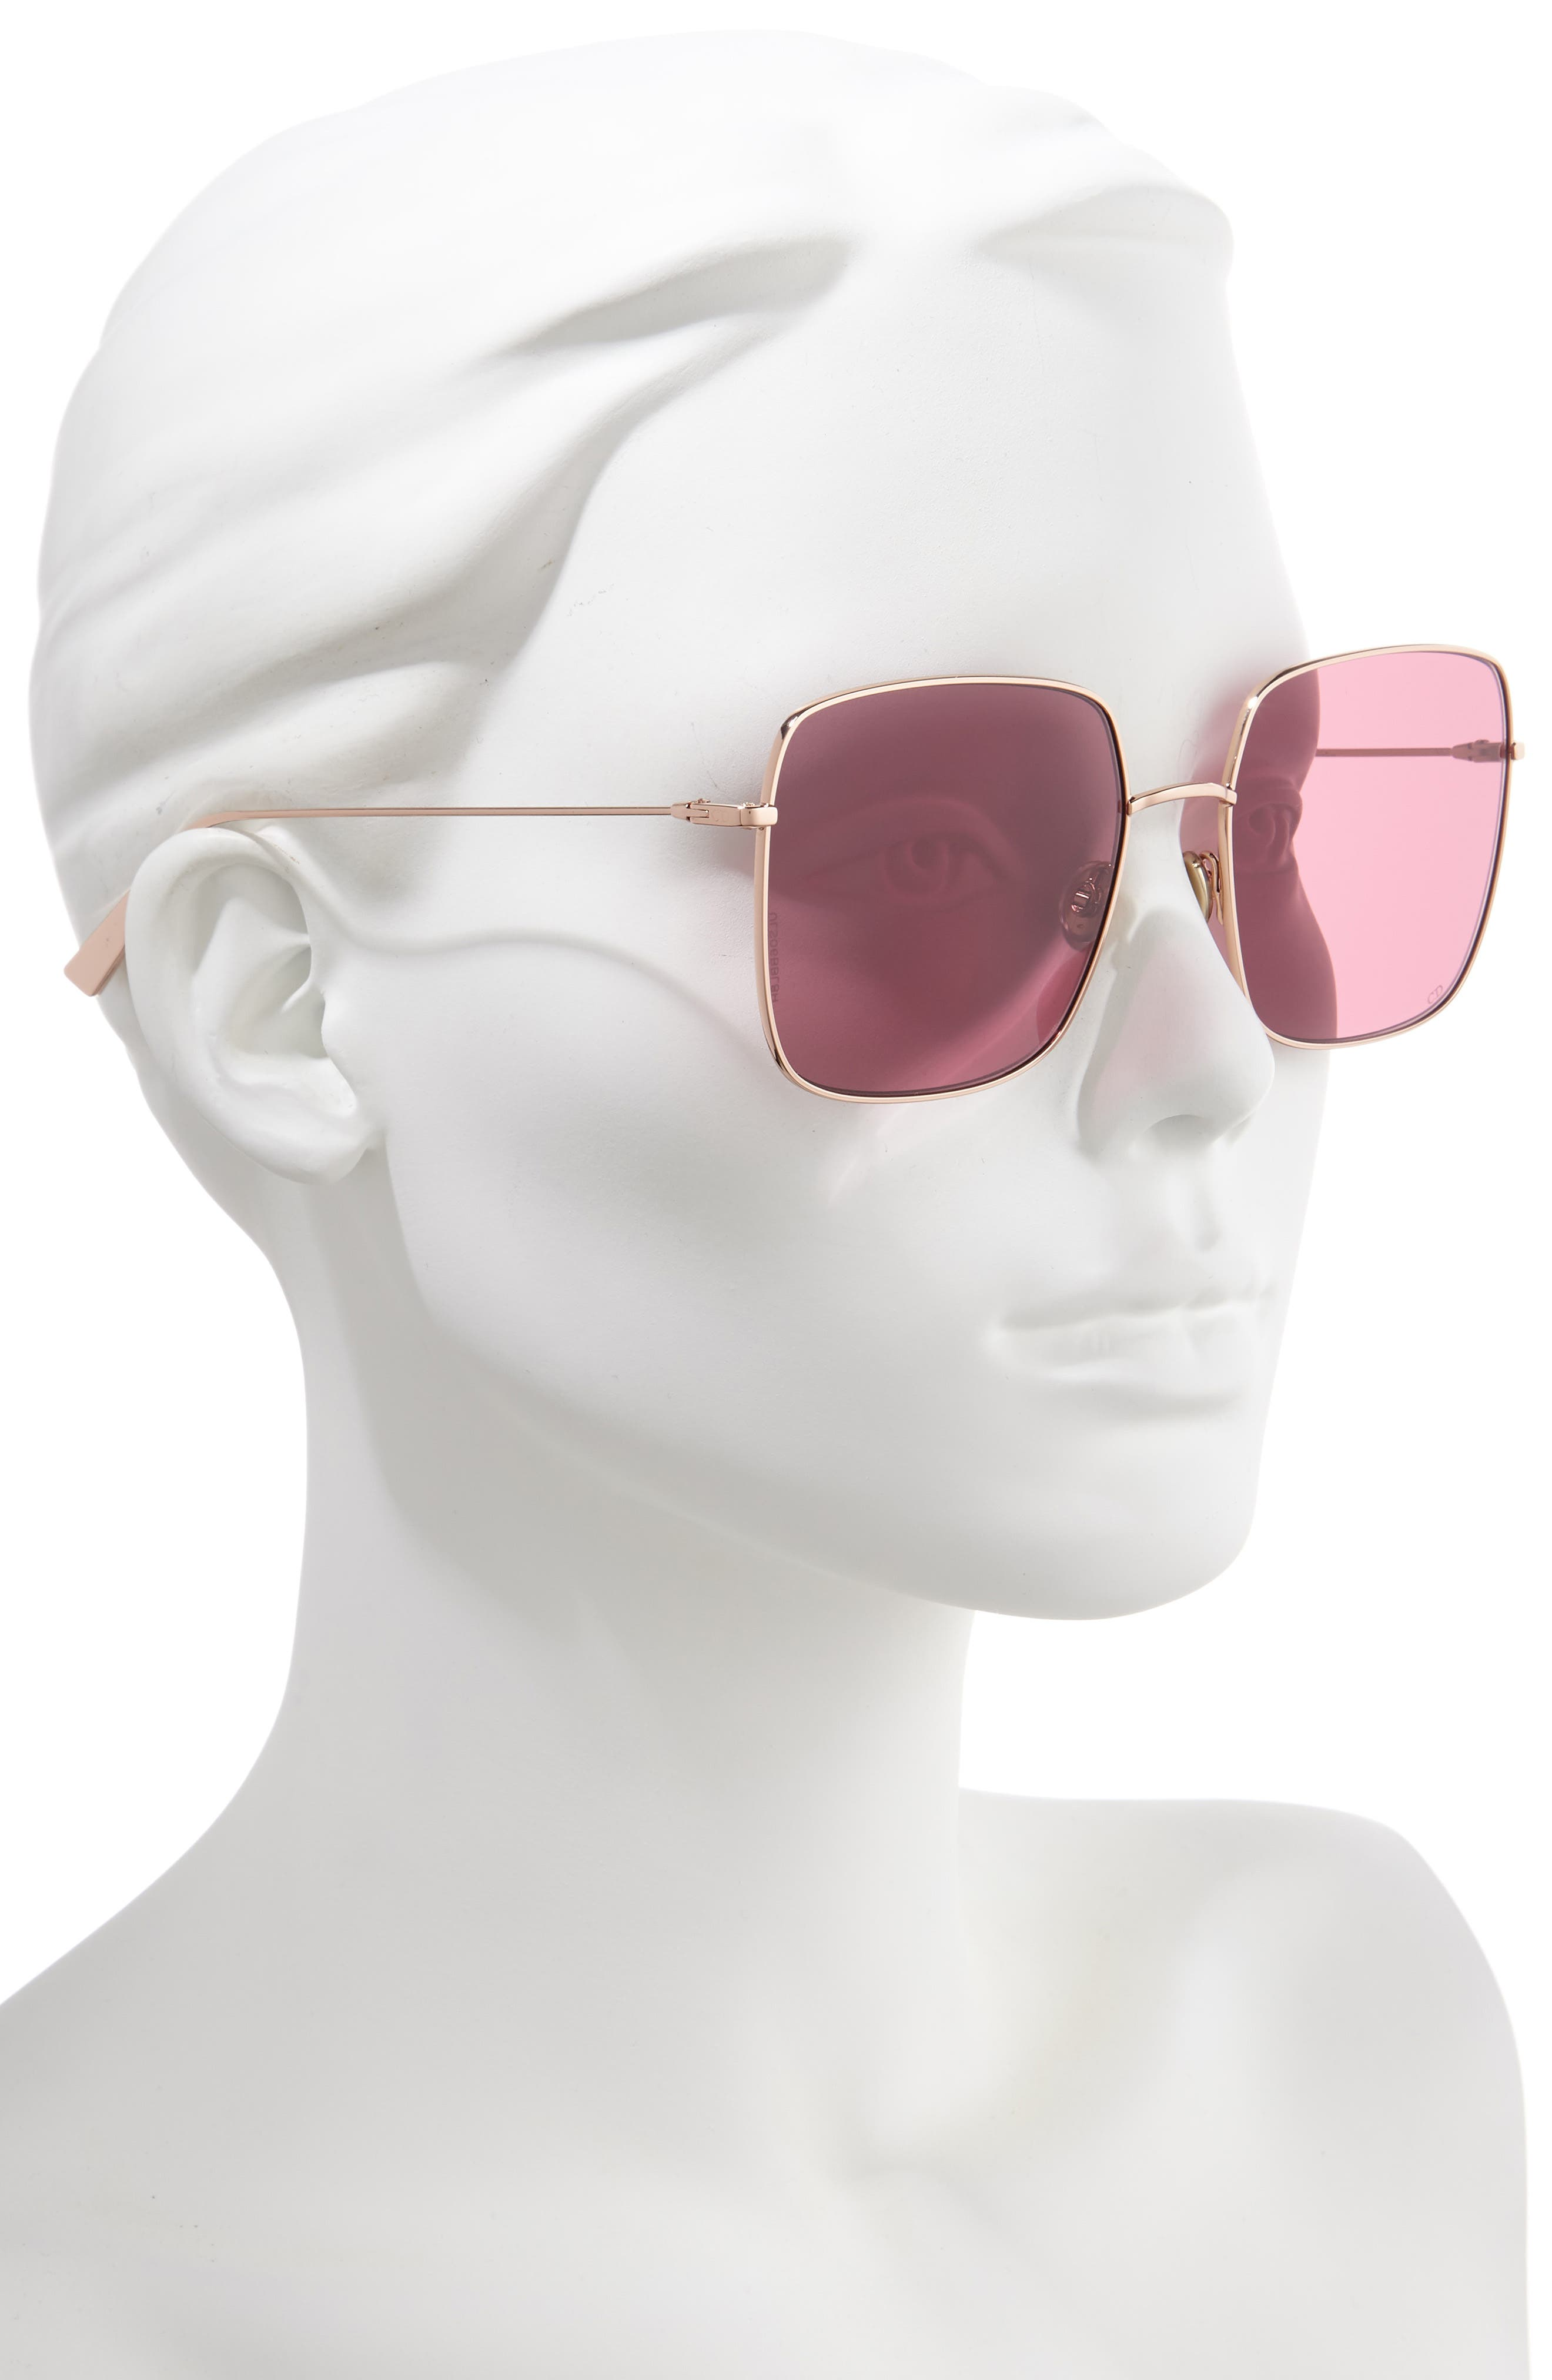 Stellaire 59mm Square Sunglasses,                             Alternate thumbnail 2, color,                             GOLD/ WINE